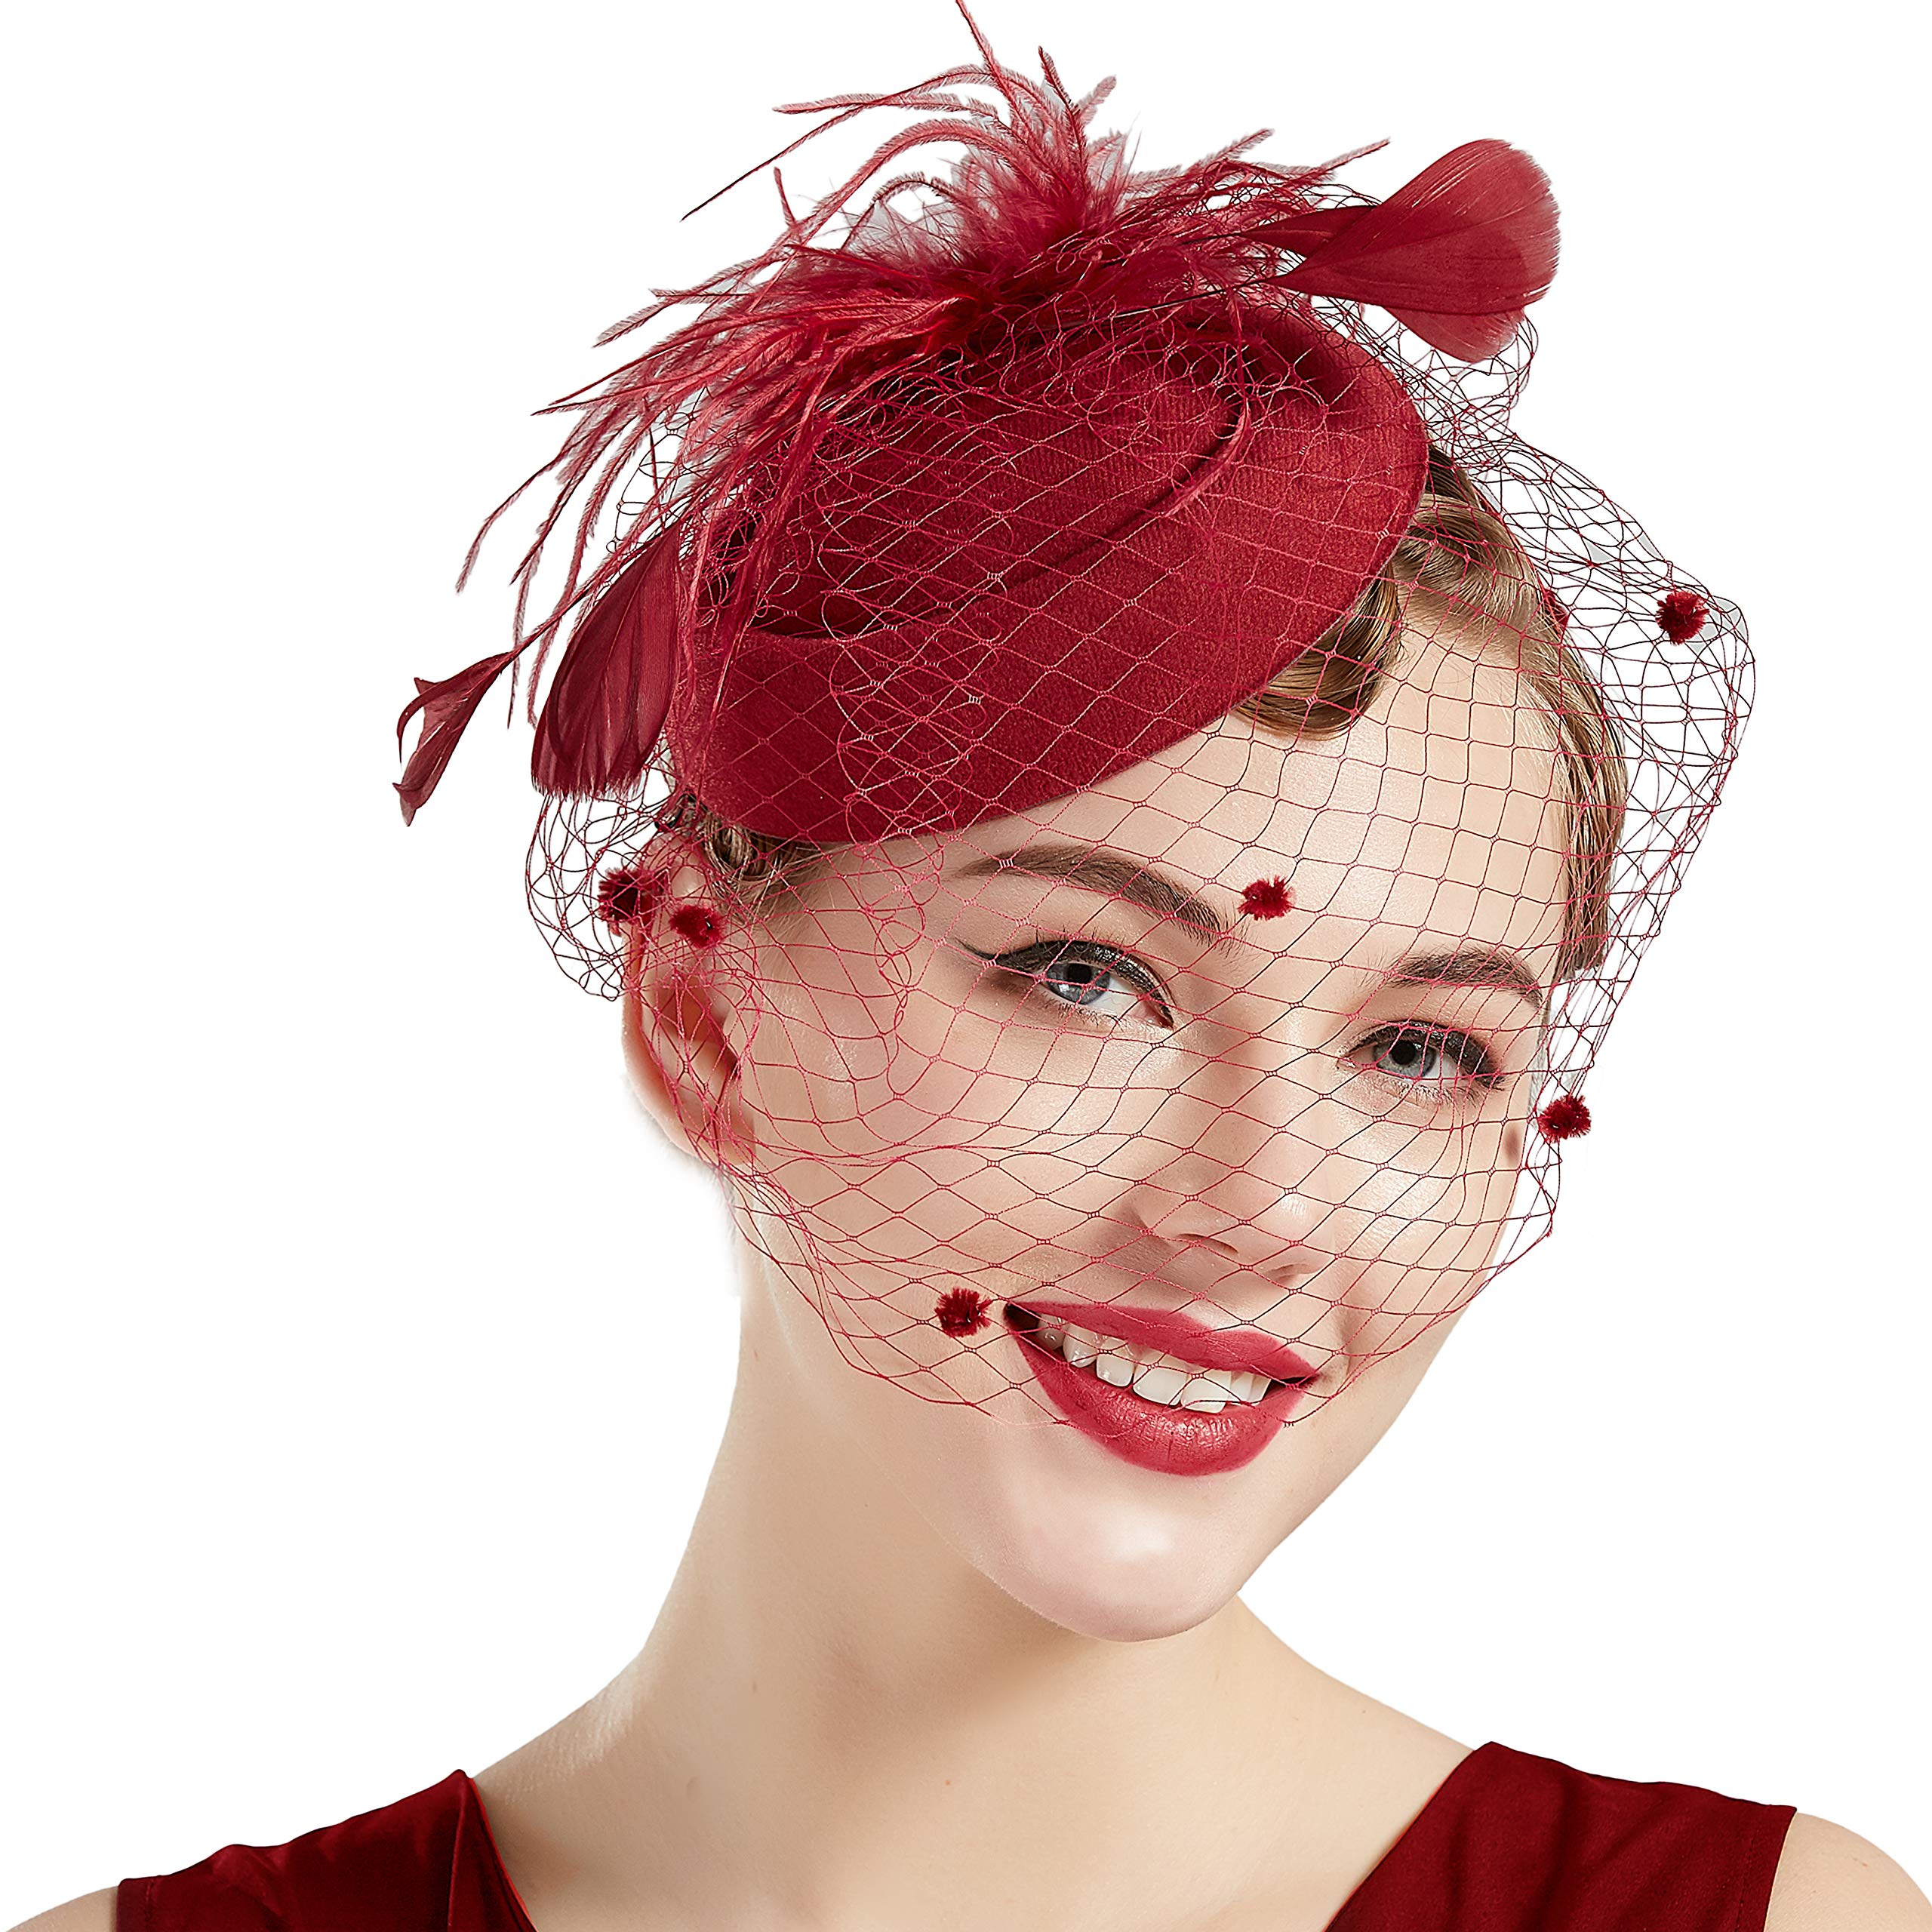 BABEYOND Women's Fascinators Hat Hair Clip Pillbox Hat Tea Party Fascinator  Hat with Veil Headband for Cocktail Wedding…- Buy Online in Dominica at  dominica.desertcart.com. ProductId : 107684513.